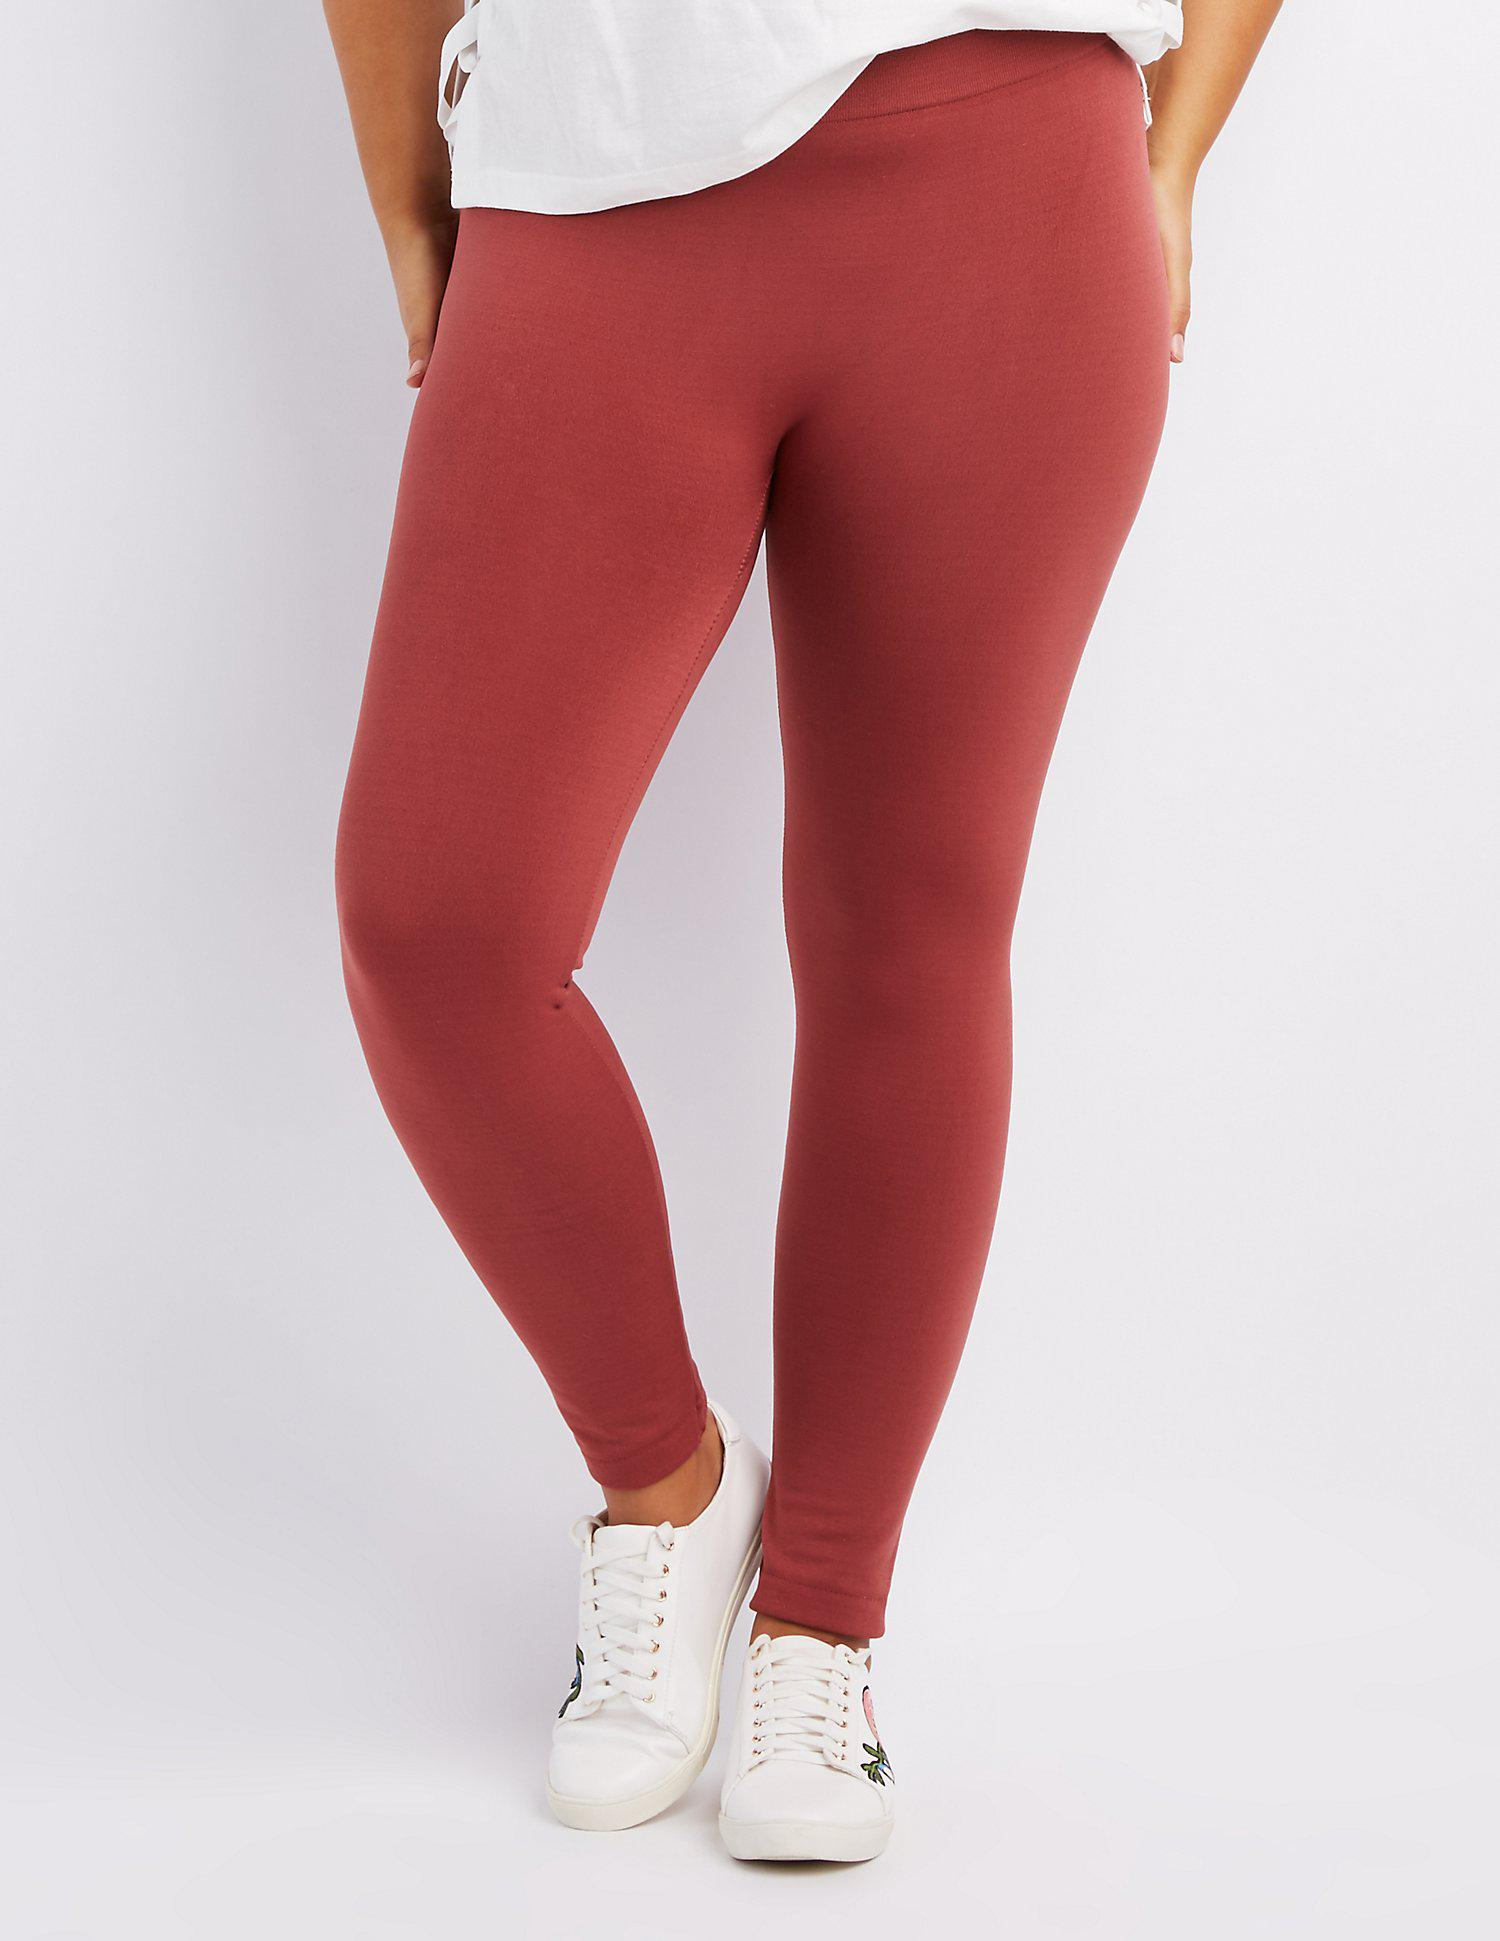 35c6a6c637b619 Lyst - Charlotte Russe Plus Size Fleece Lined Leggings in Red